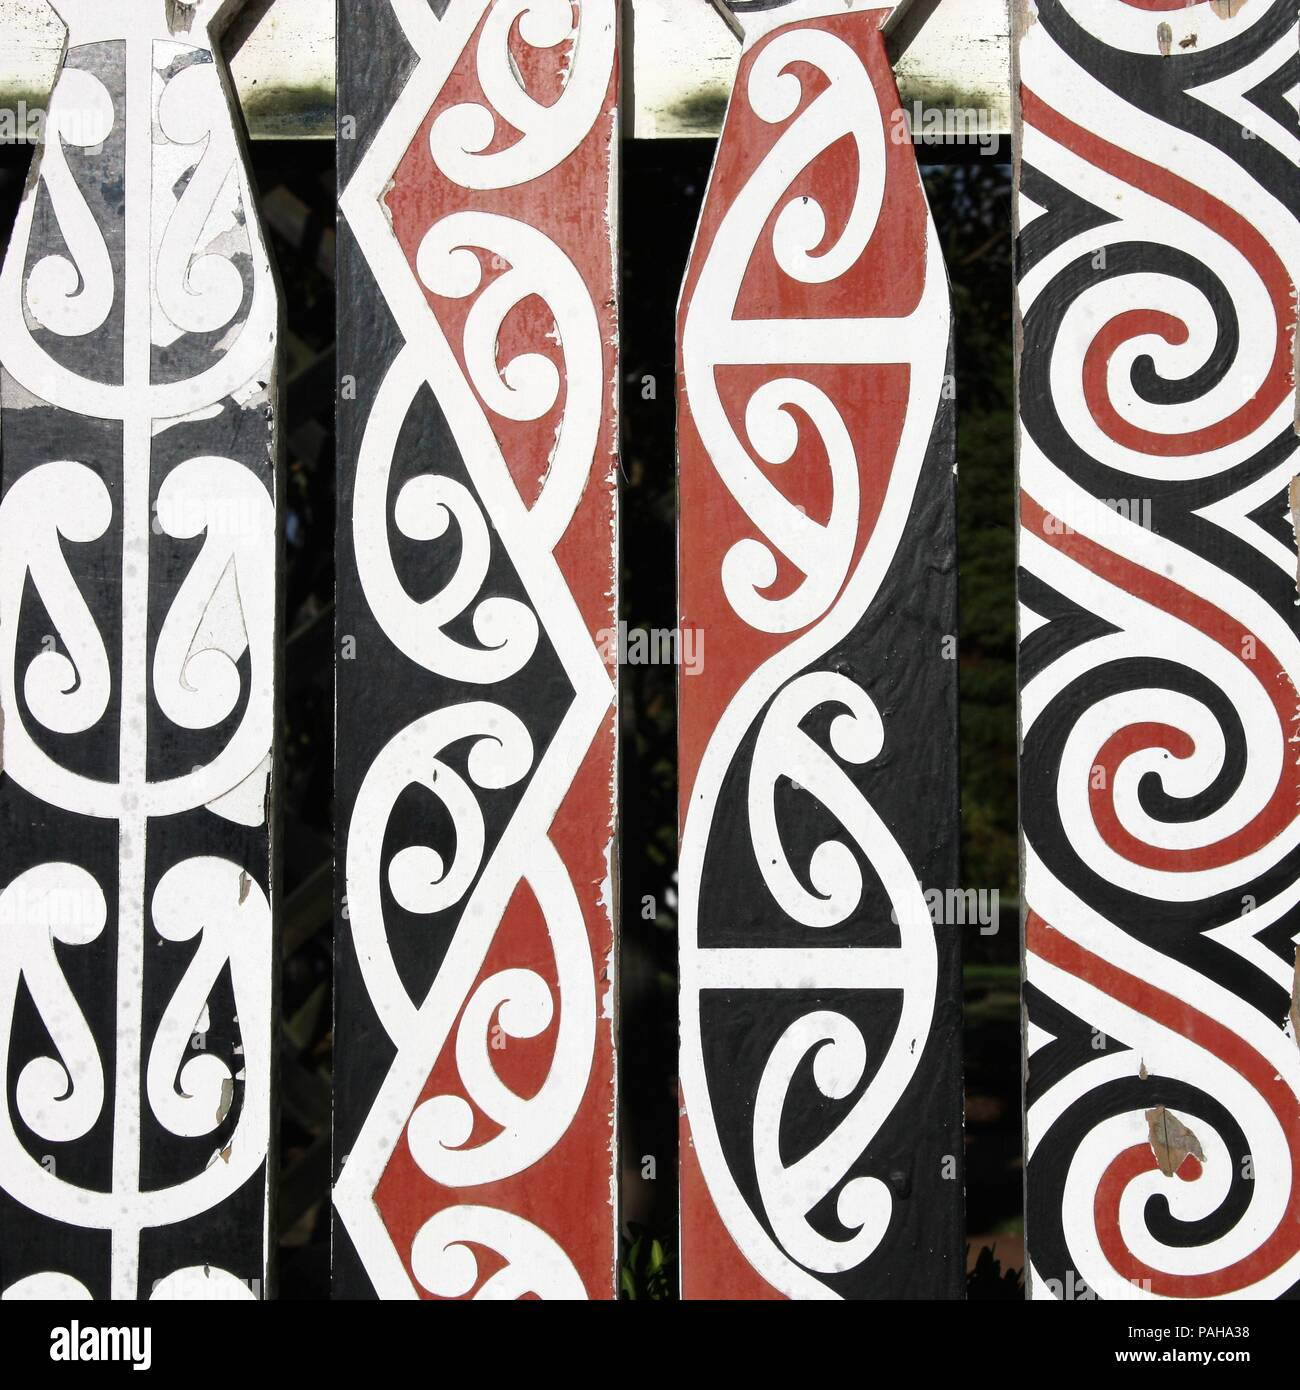 Maori painted decorations in Rotorua, New Zealand. Square composition. - Stock Image